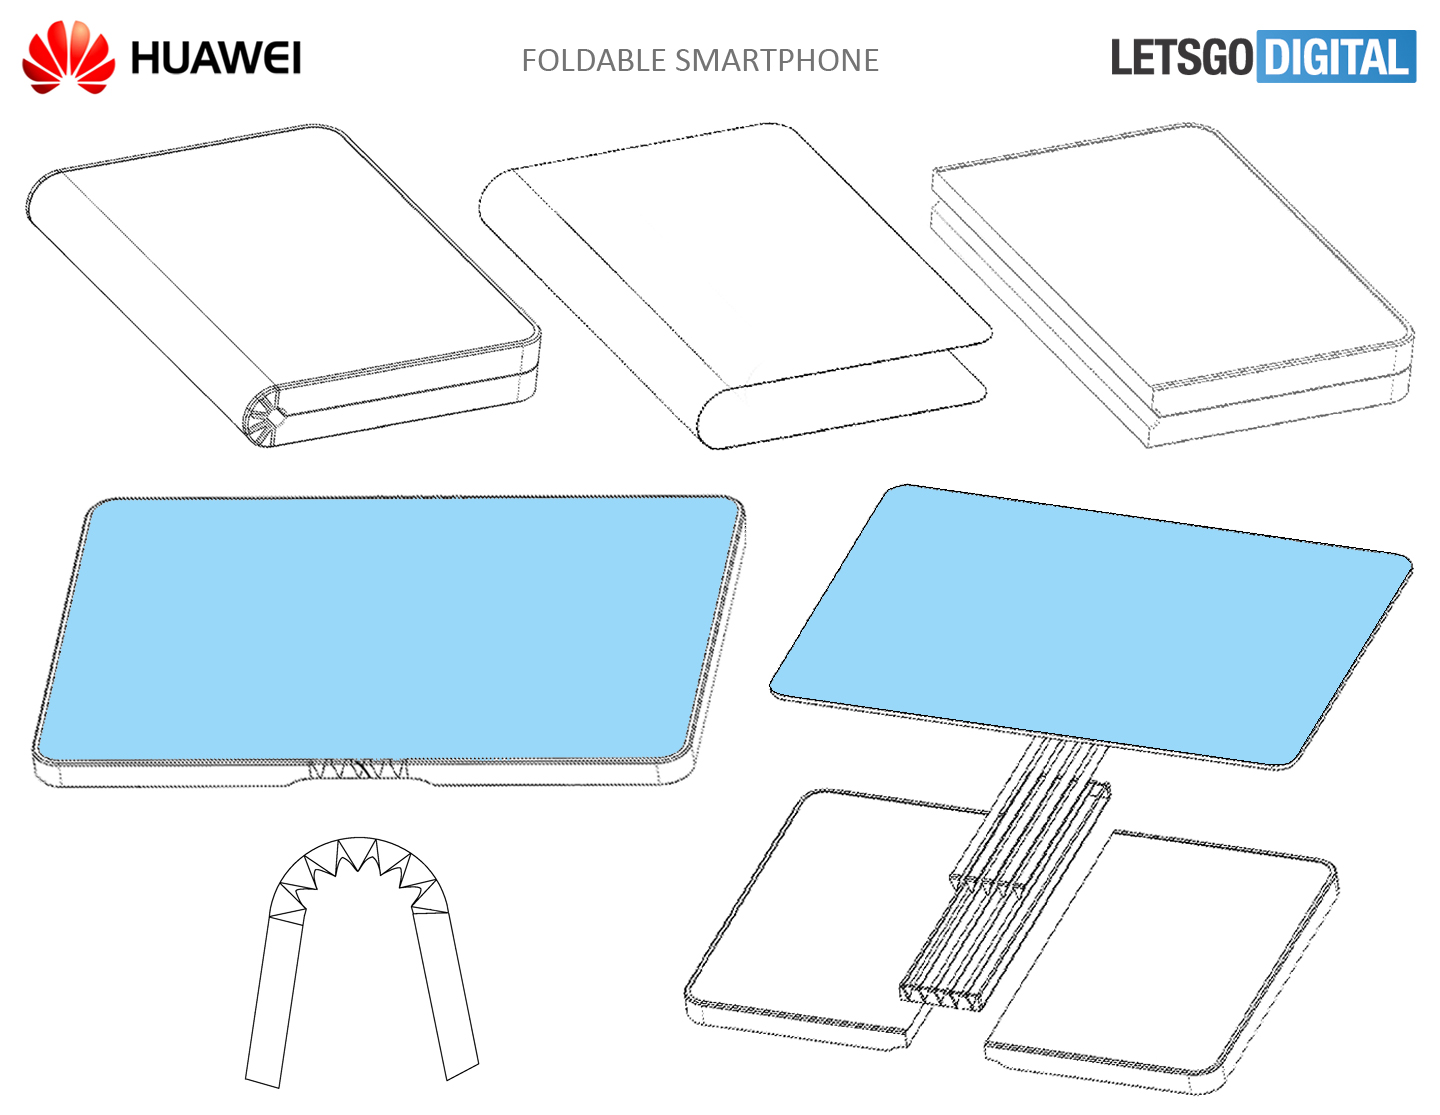 Patent For Huawei Foldable Smartphone Discovered